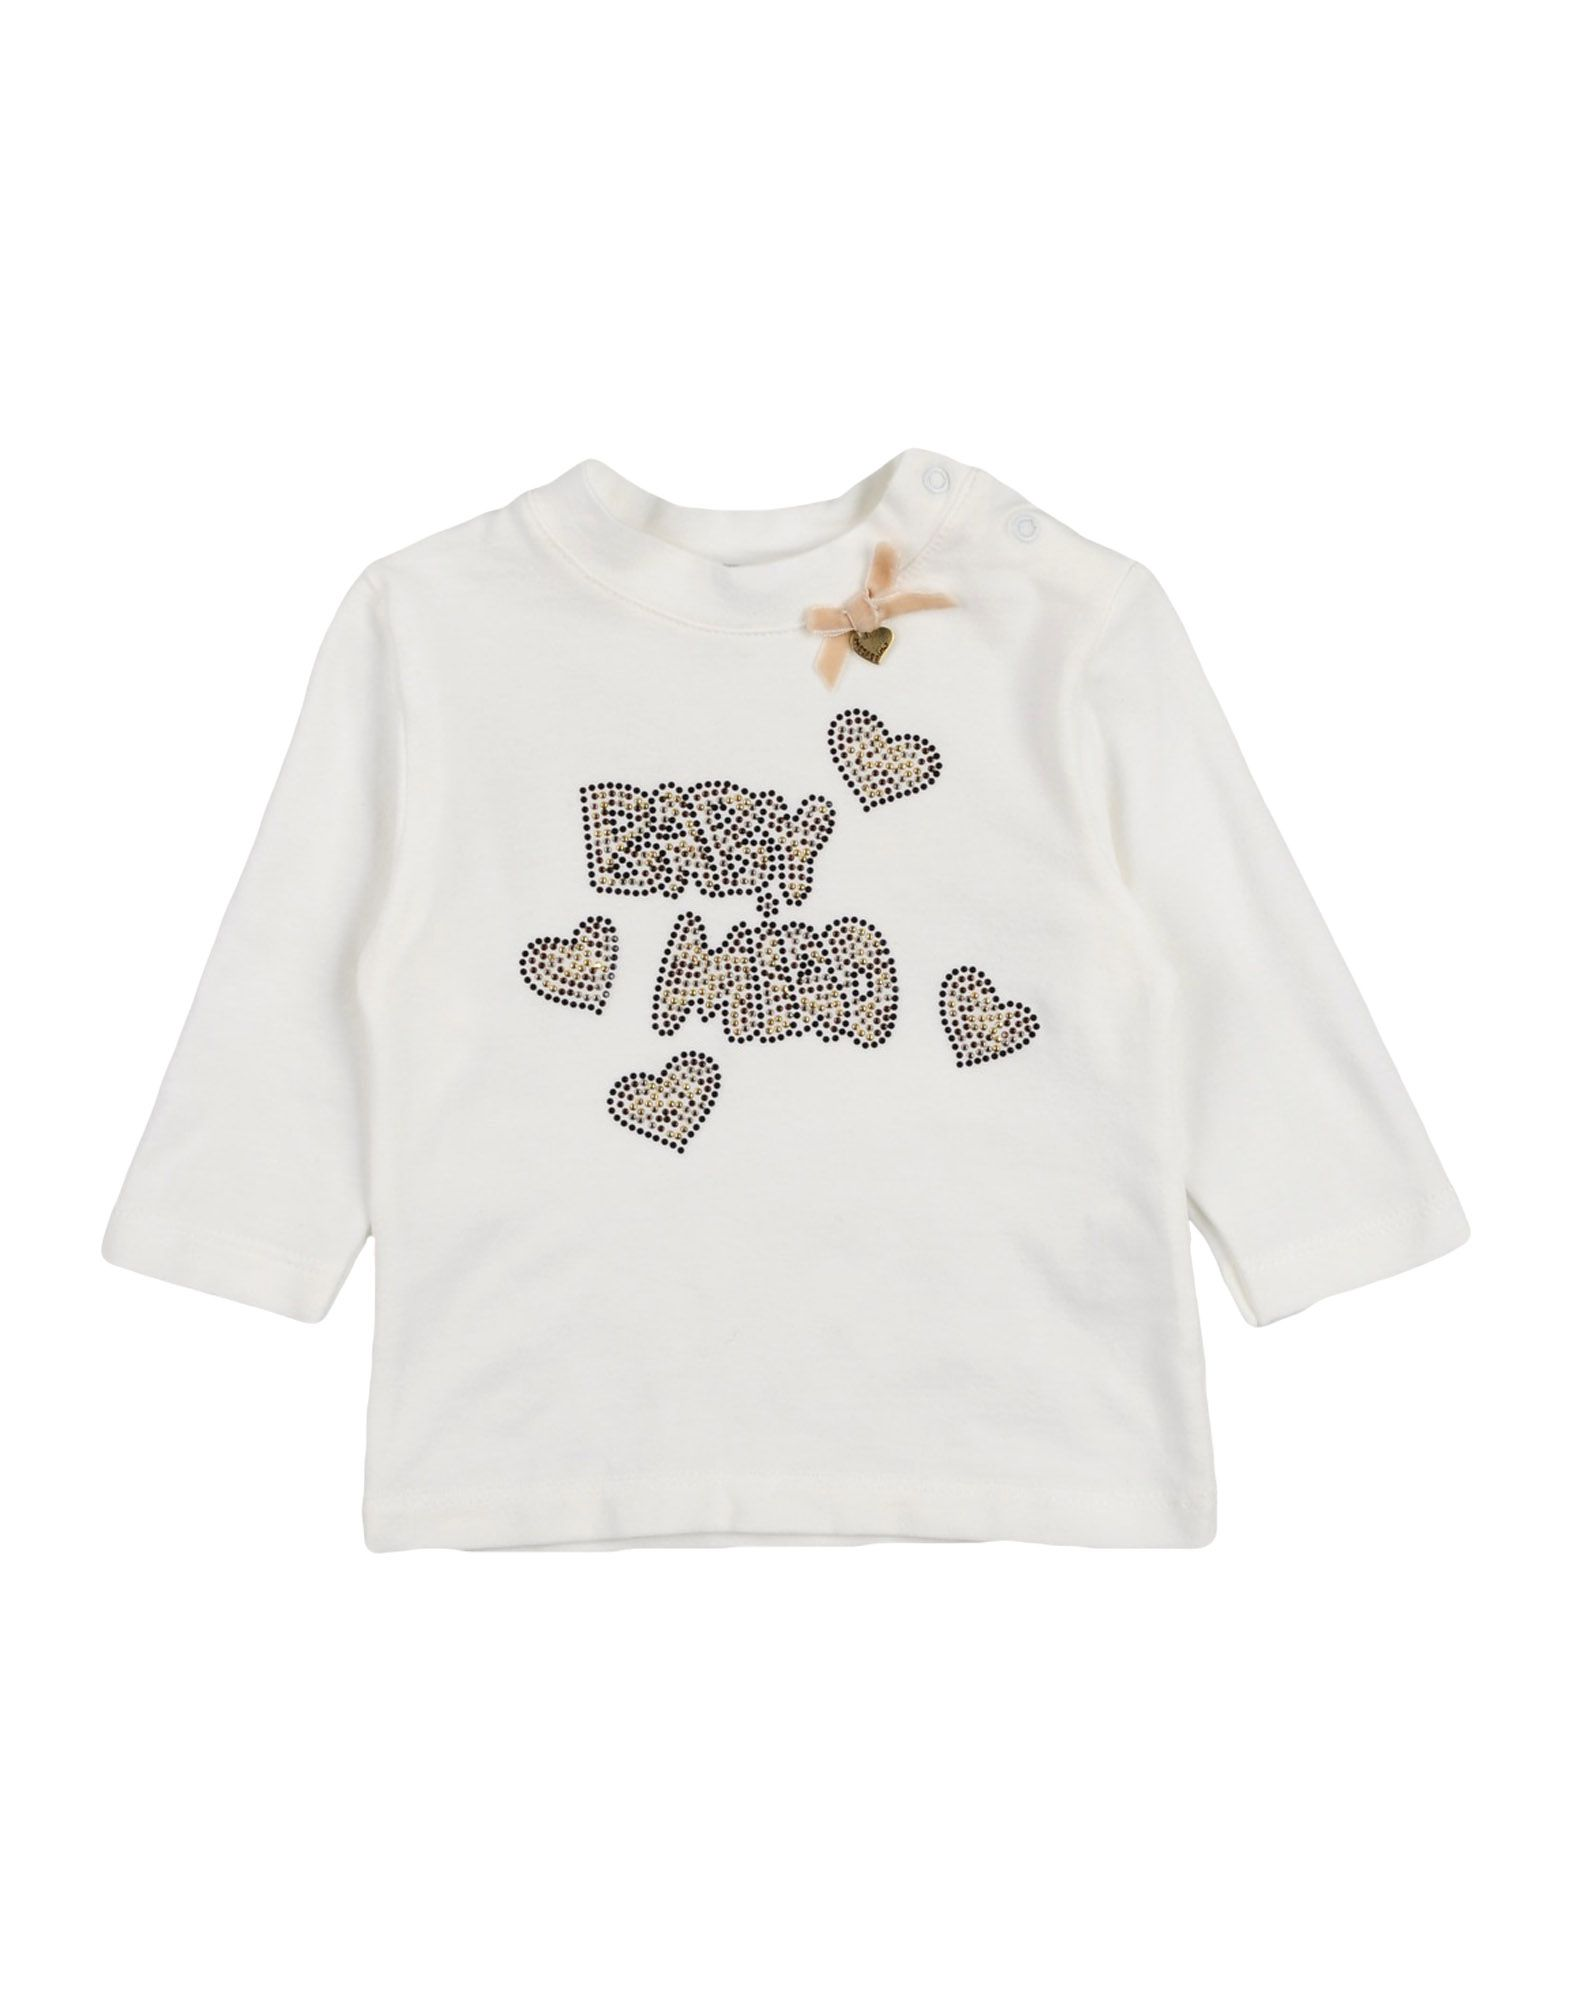 Paesaggino Babies' T-shirts In Neutrals